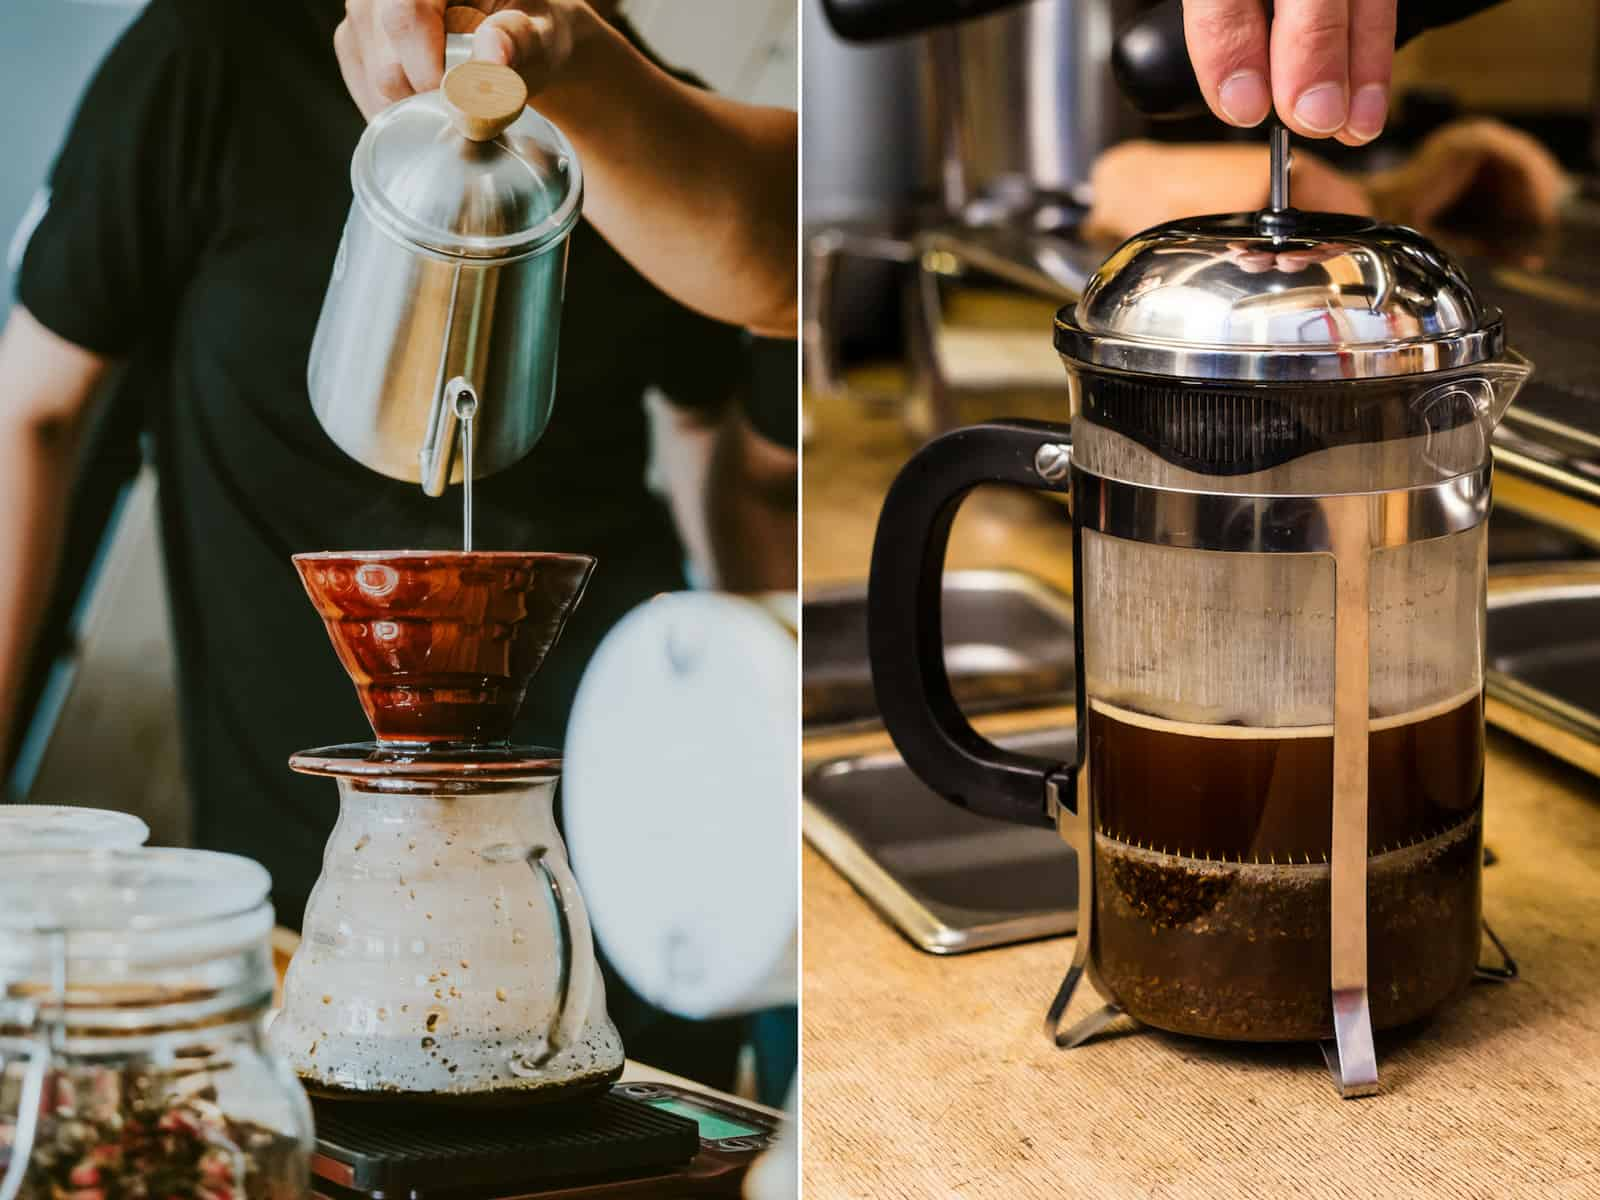 French Press vs Pour Over: Which One is Better?